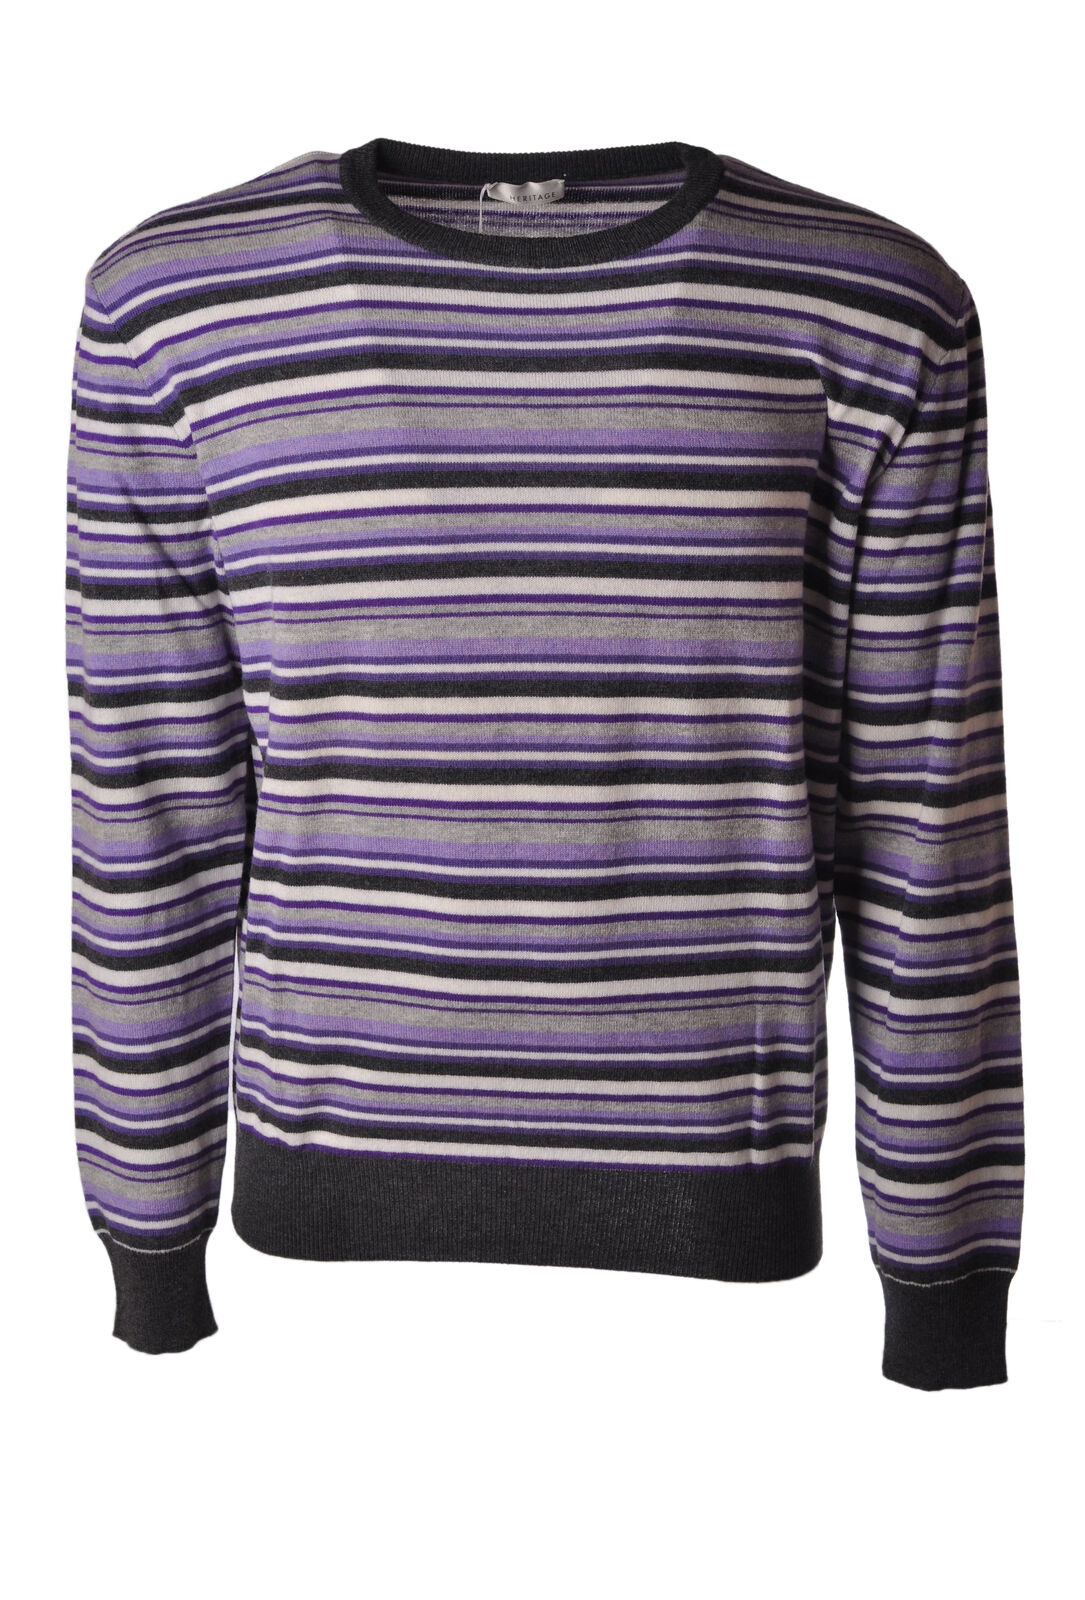 Heritage  -  Sweaters - Male - Fantasy - 4649621A180604